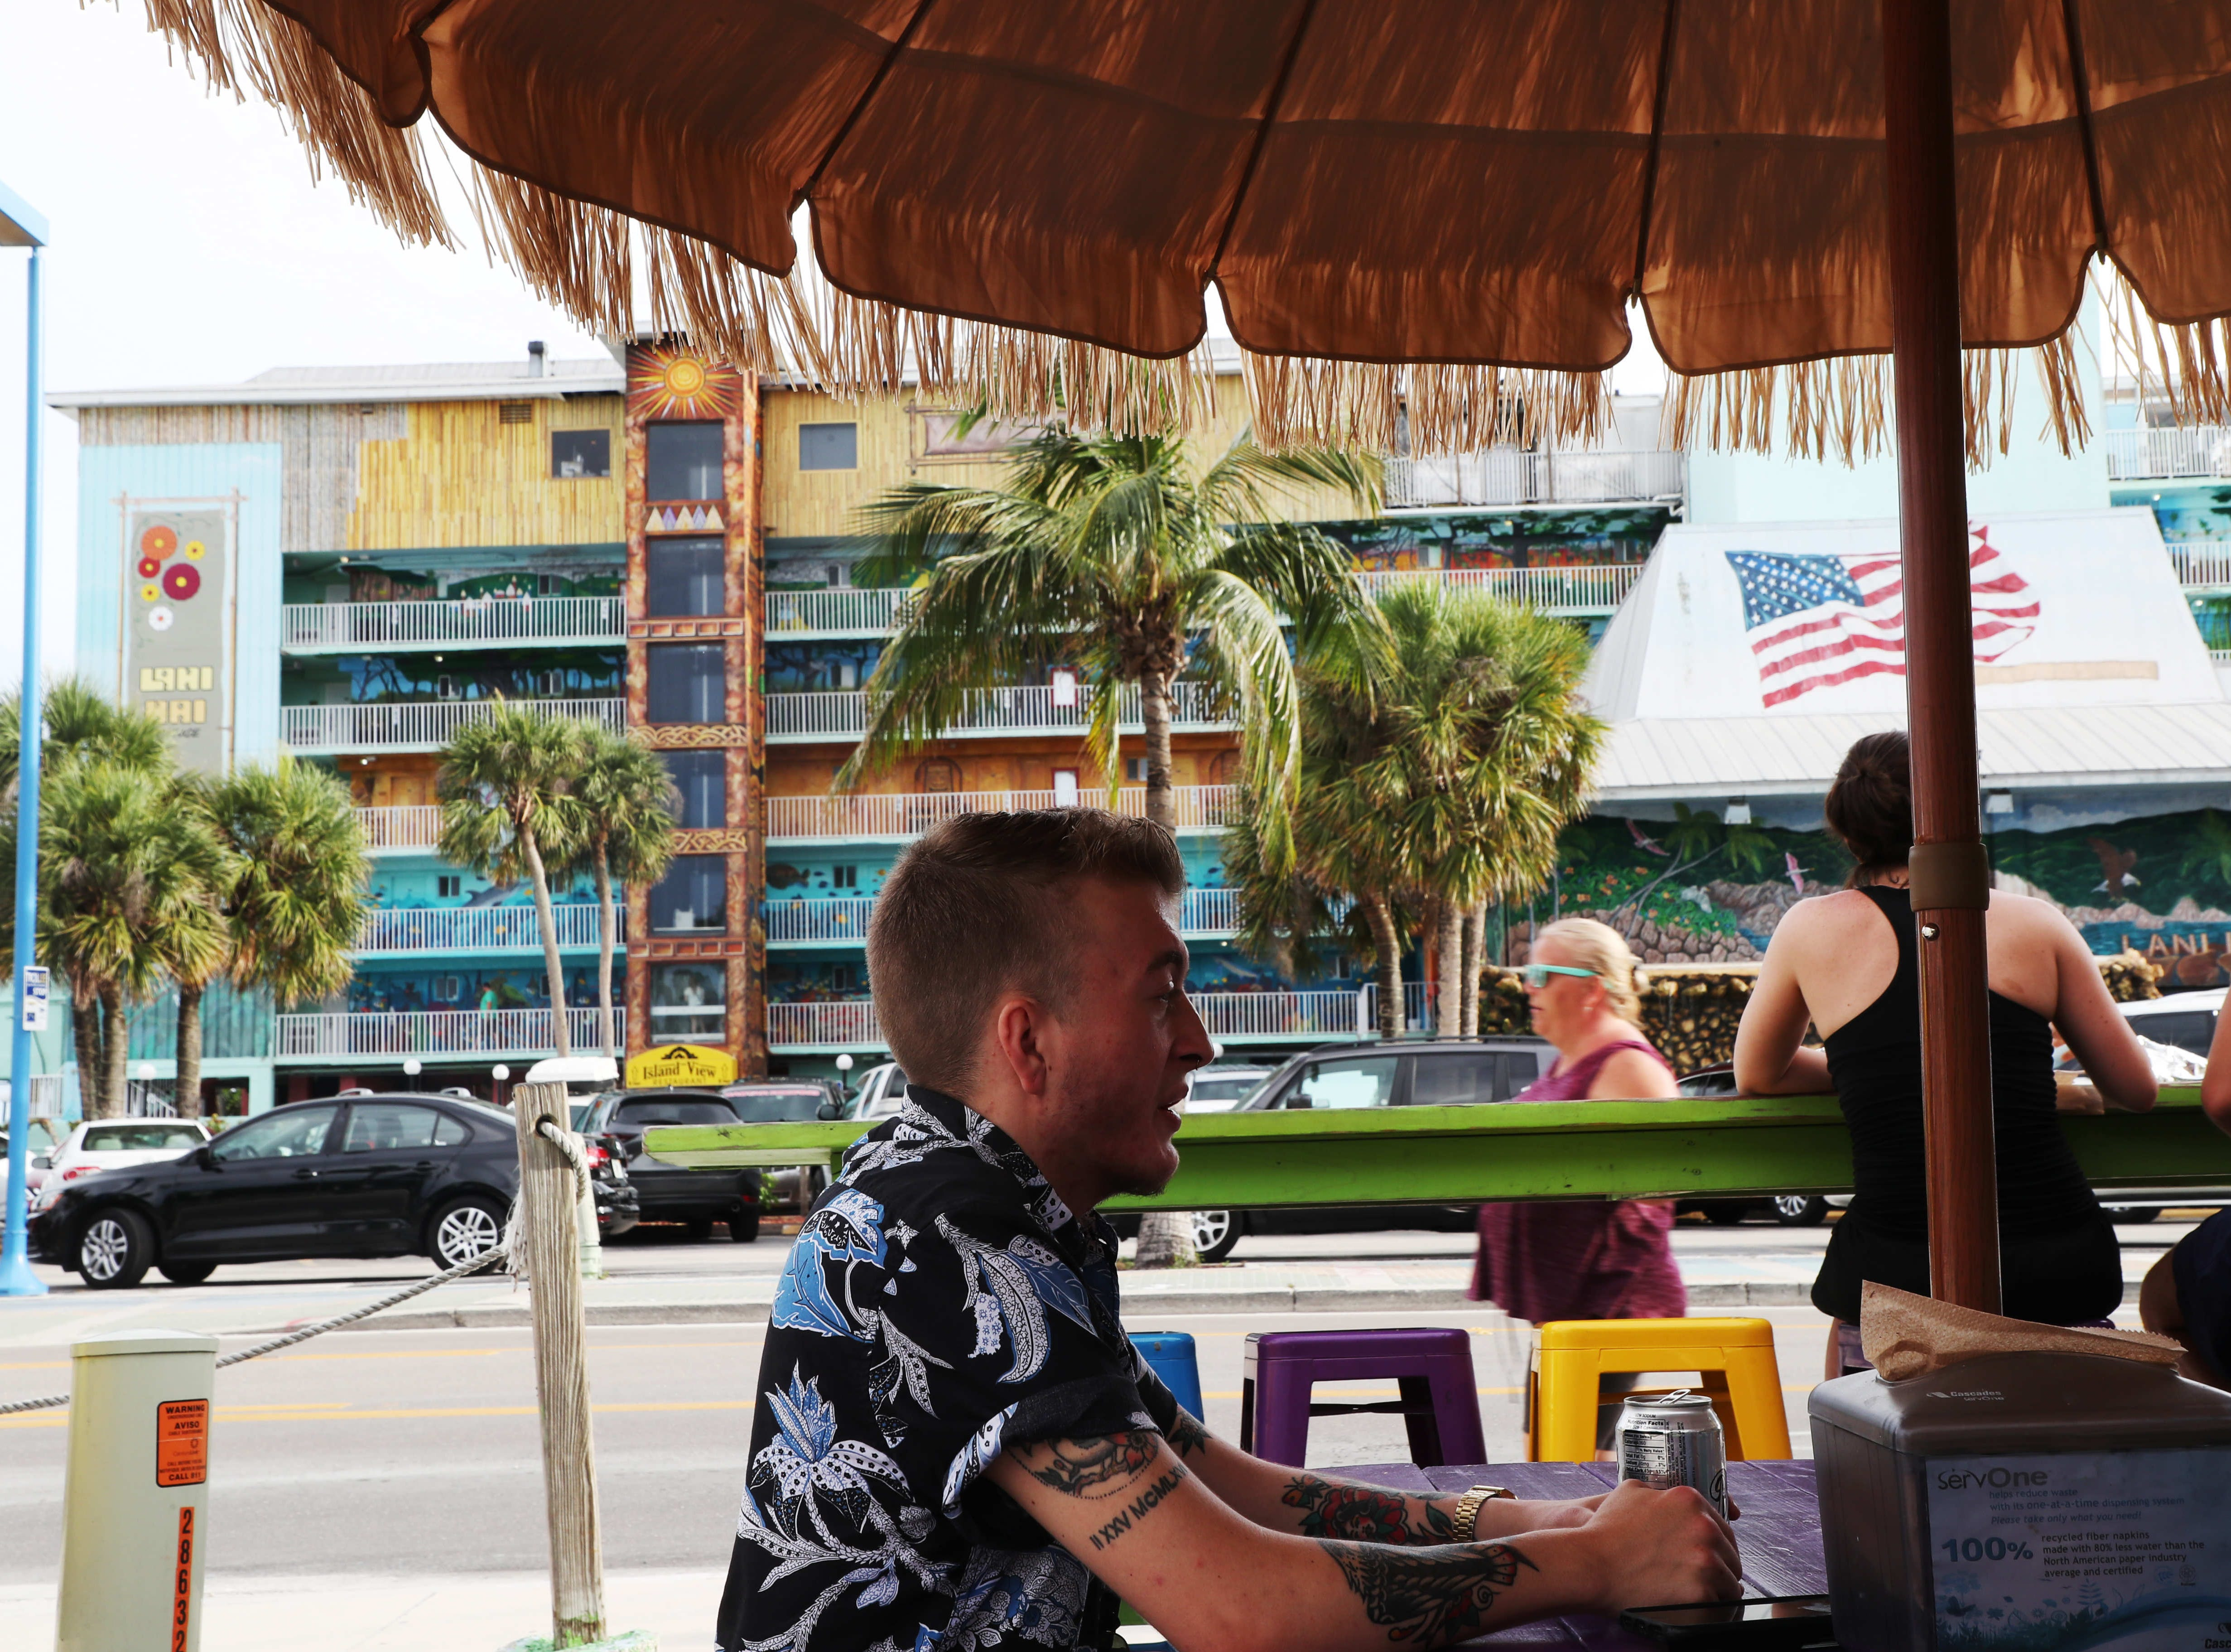 Kasey Fraize takes in a meal recently on Fort Myers Beach. Fraize struggled through middle and high school with his female identity, at 15 he knew he wanted to transition but waited until college to avoid the hassles of parents, teachers and peers.